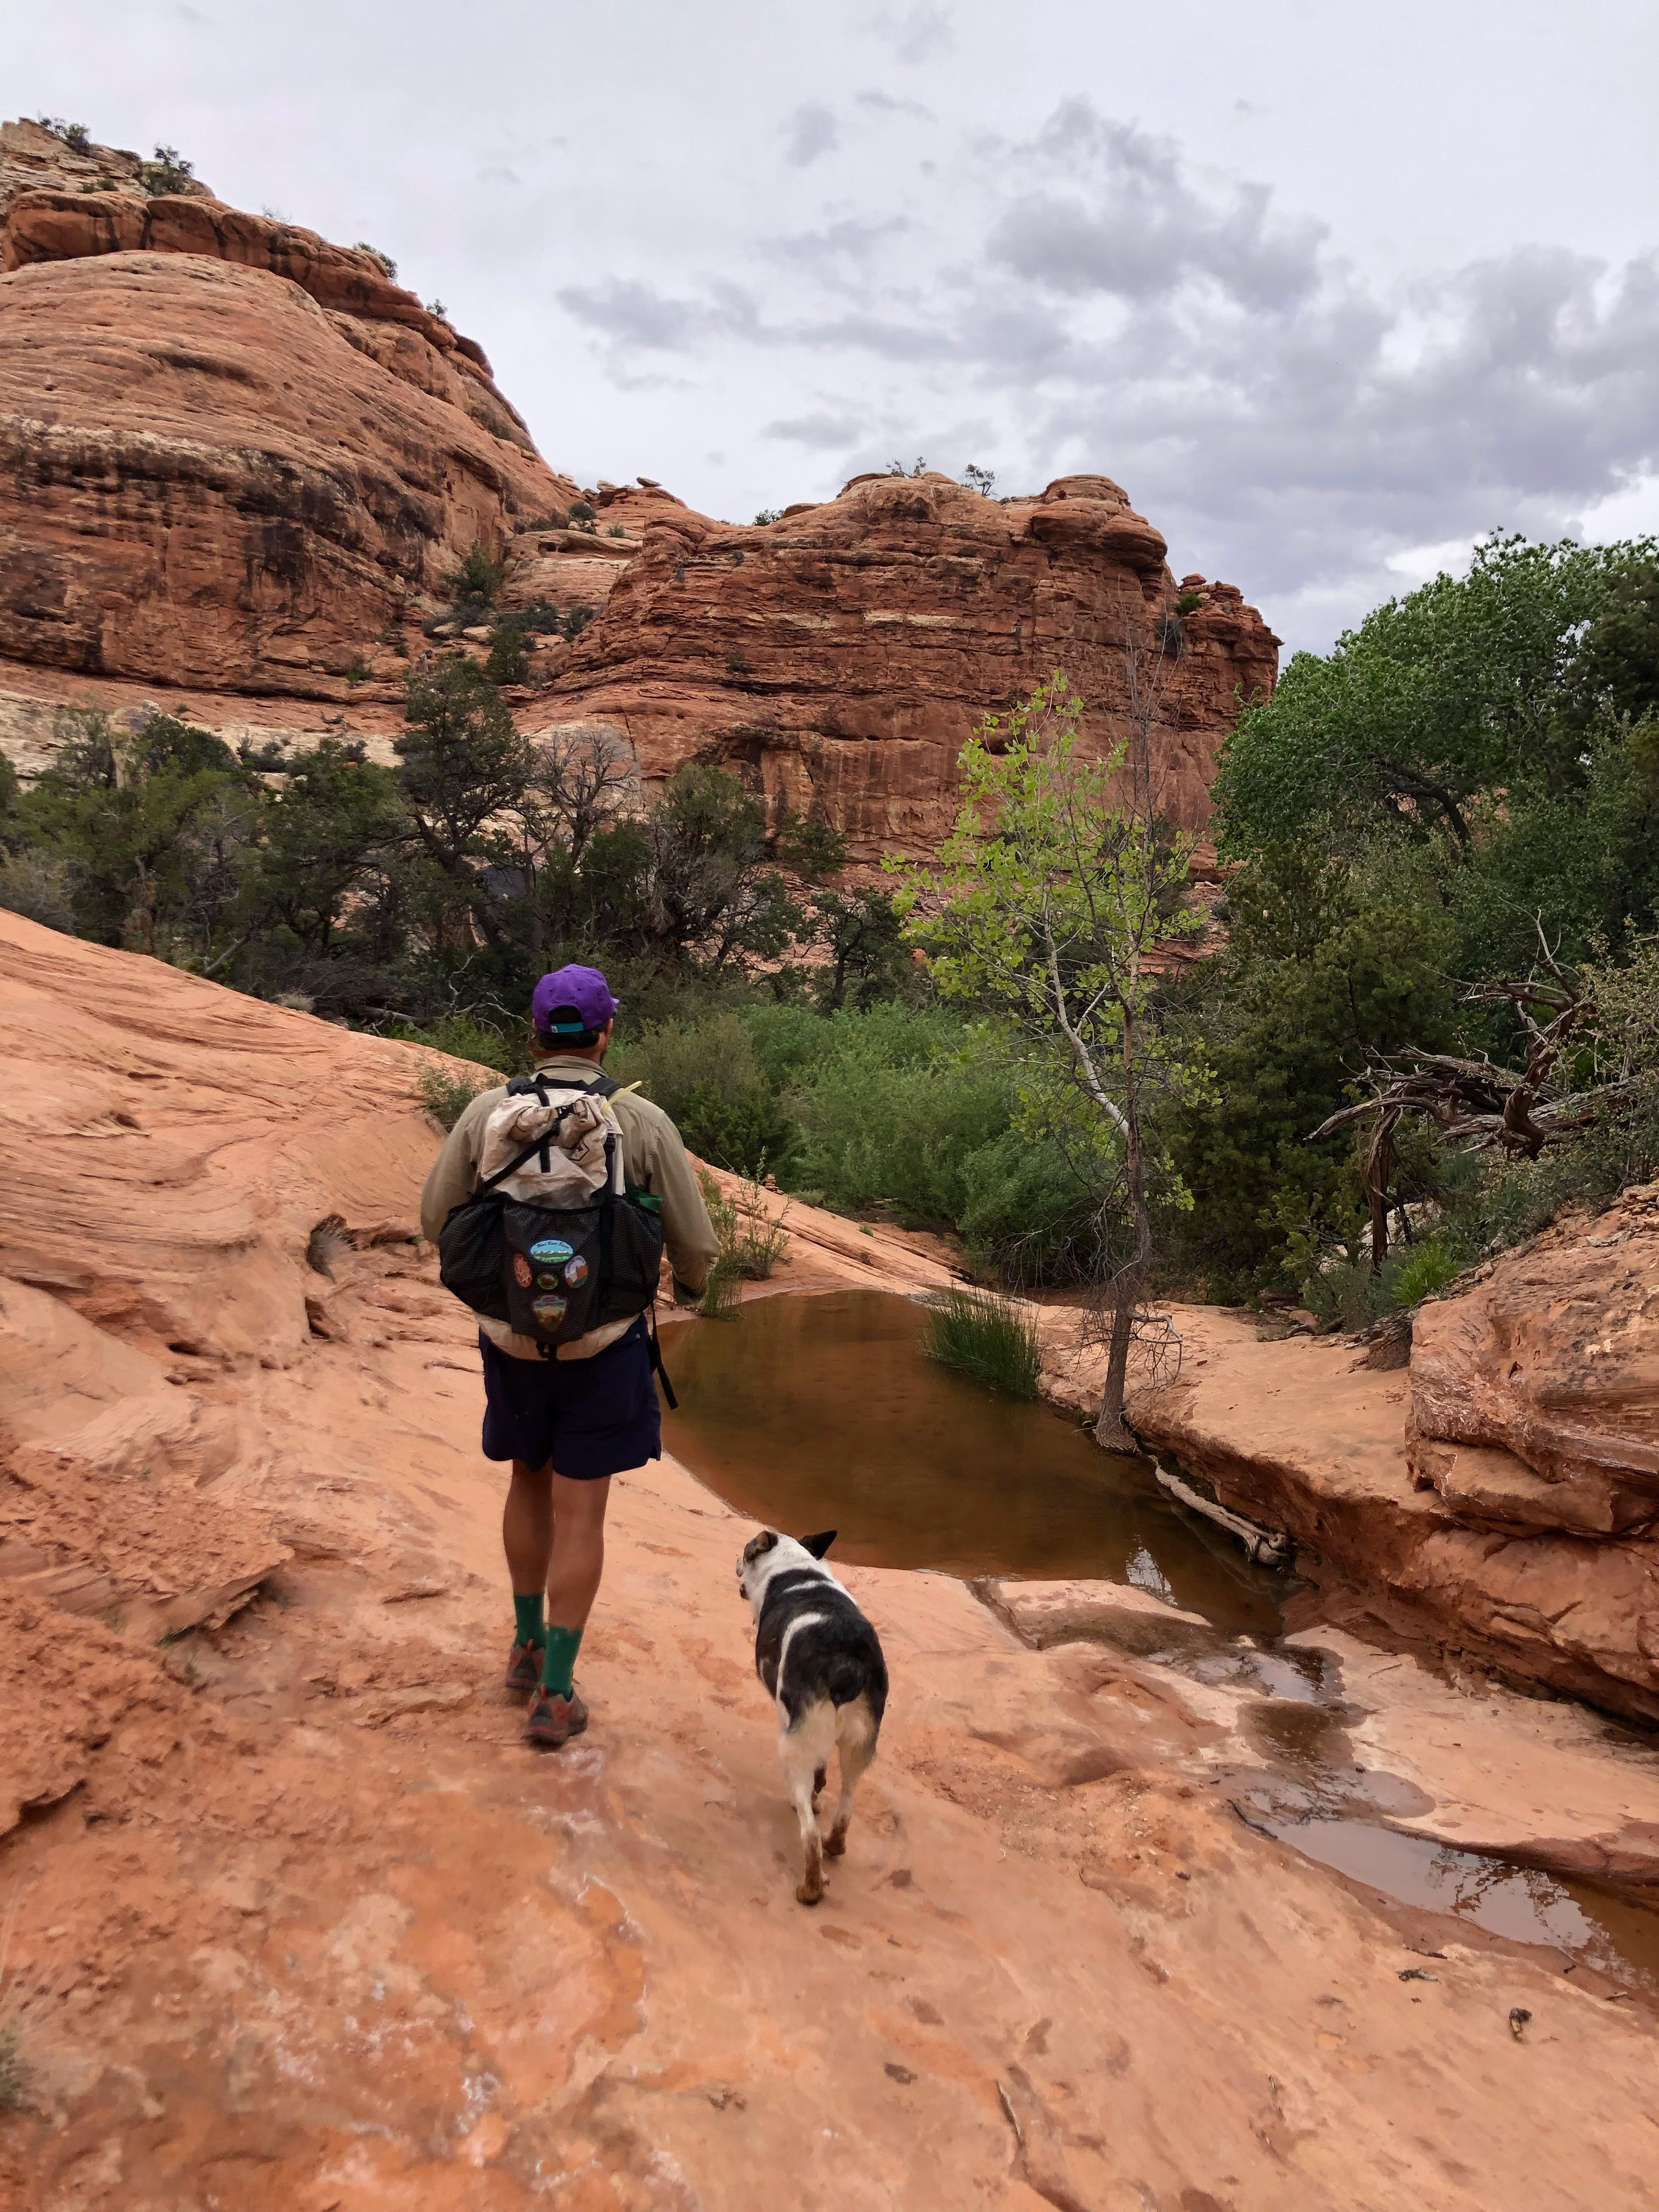 Make sure your dog is prepped and ready to hike, too.  Pic cred: Alexi Kimiatek, Wildland Trekking